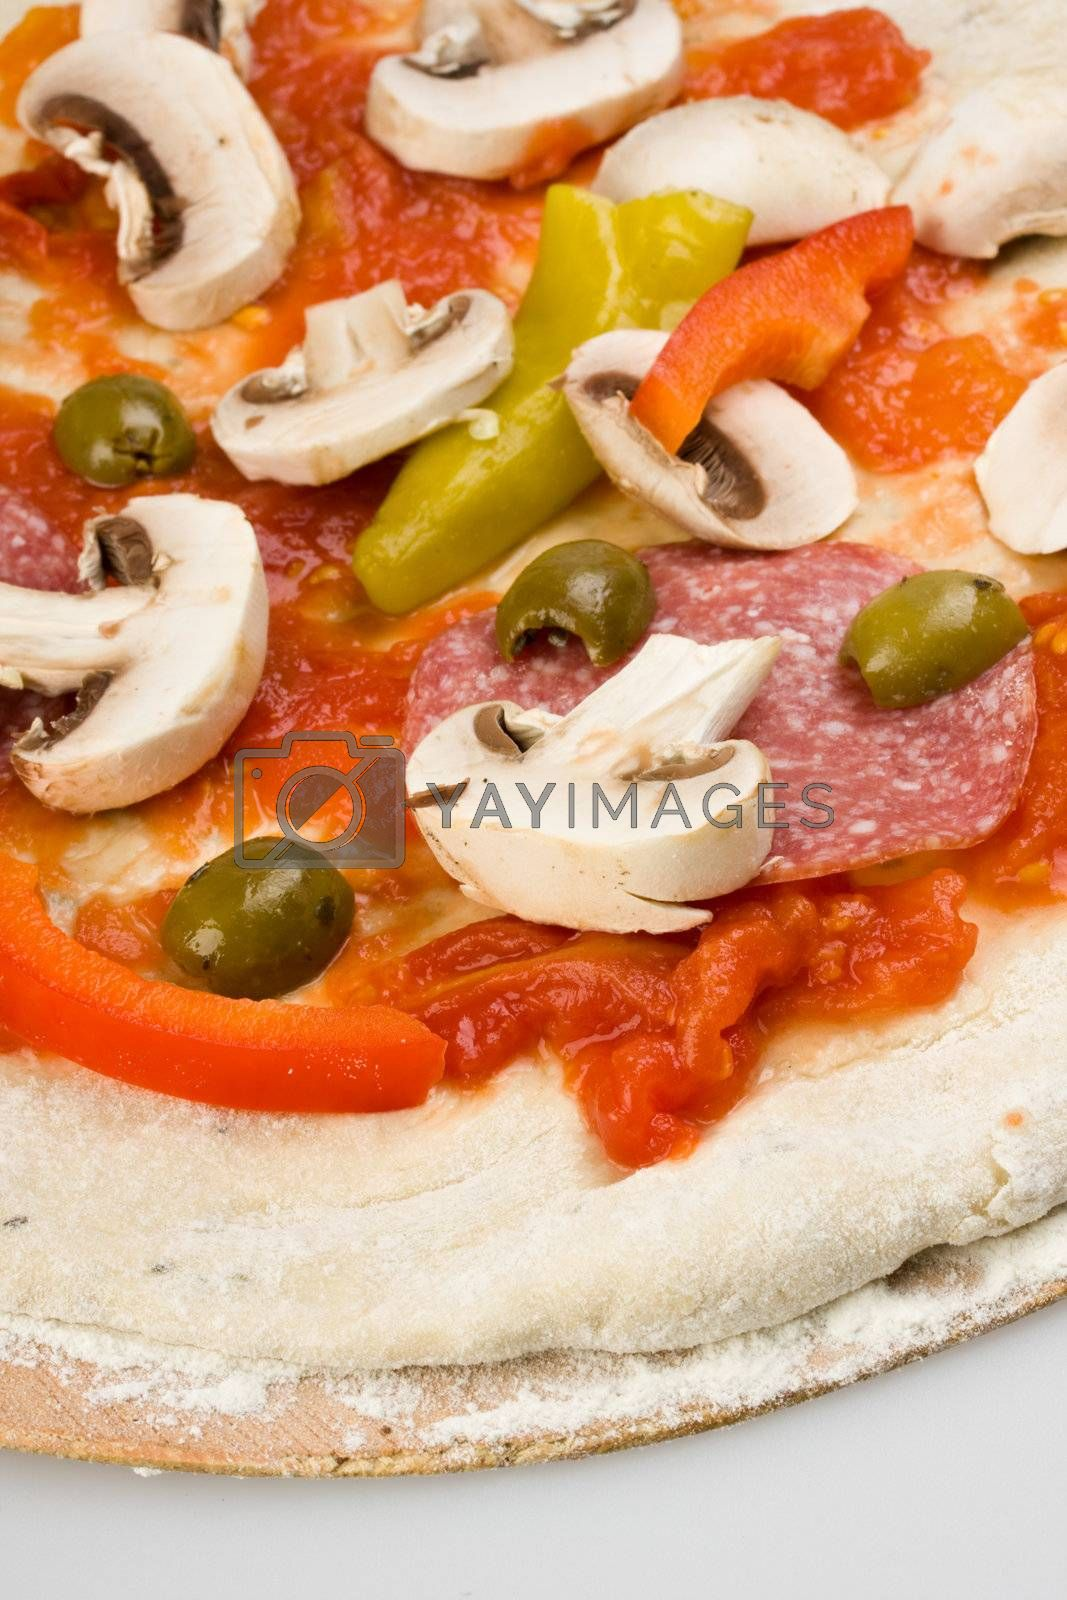 unbaked pizza prepared to bake on a wooden board